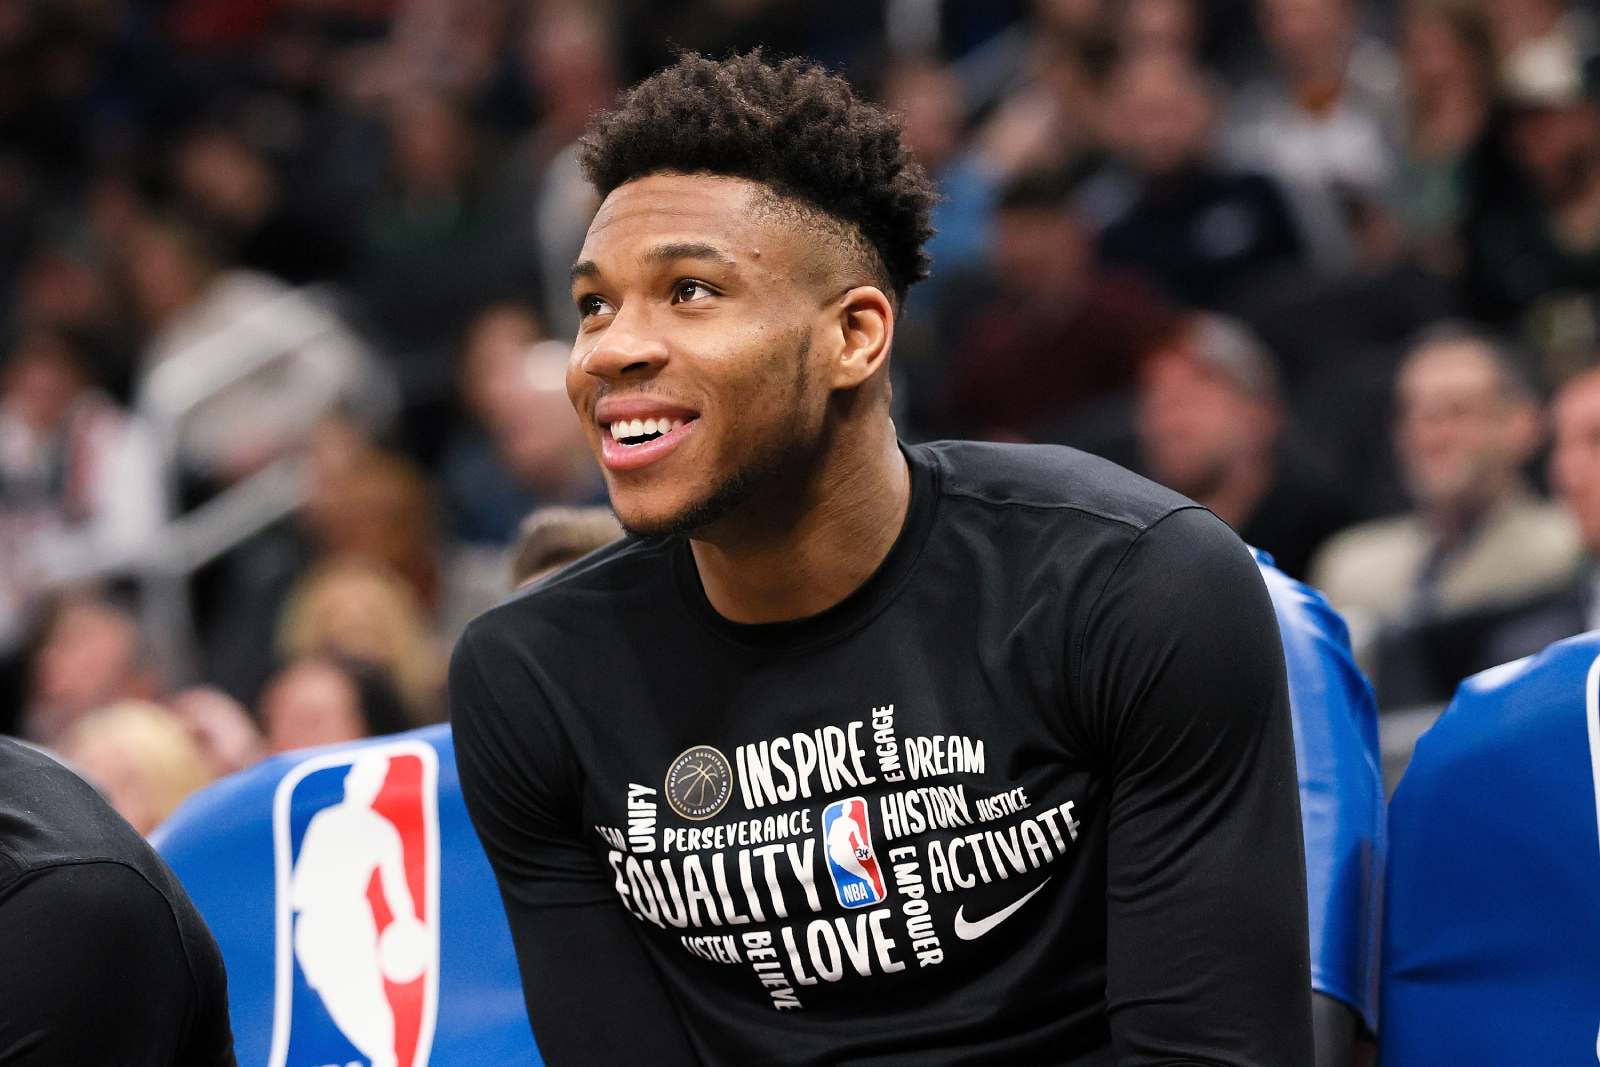 Giannis Antetokounmpo Maybe Just Revealed the Team He Wants To Move To